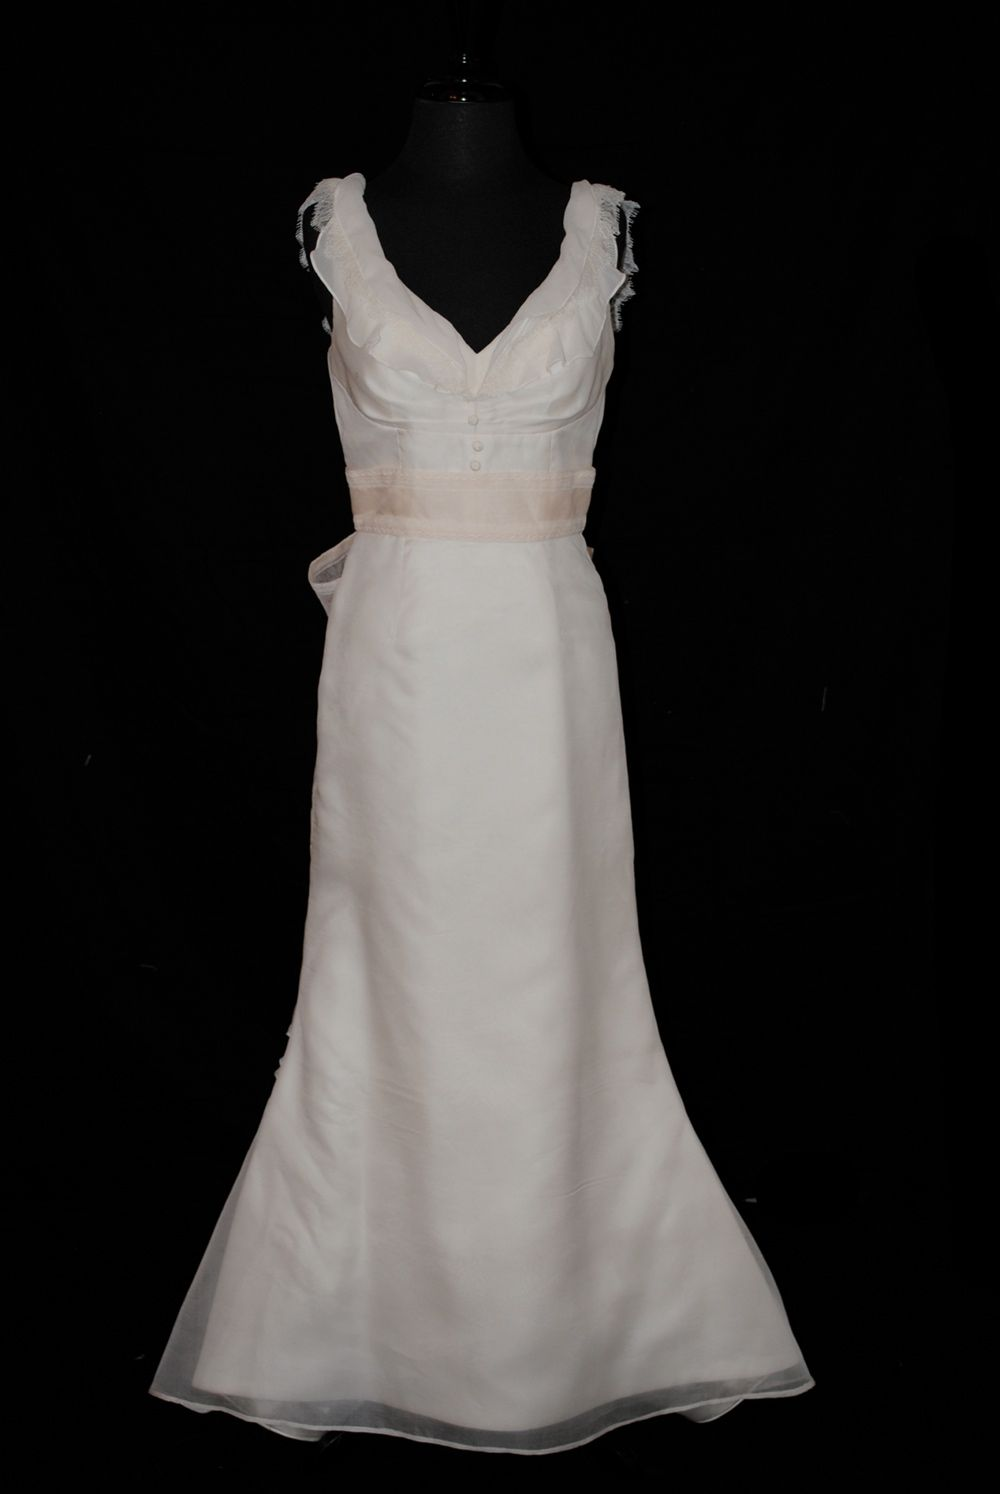 Fabulous Frocks ~ designer bridal gowns on consignment | Modest ...